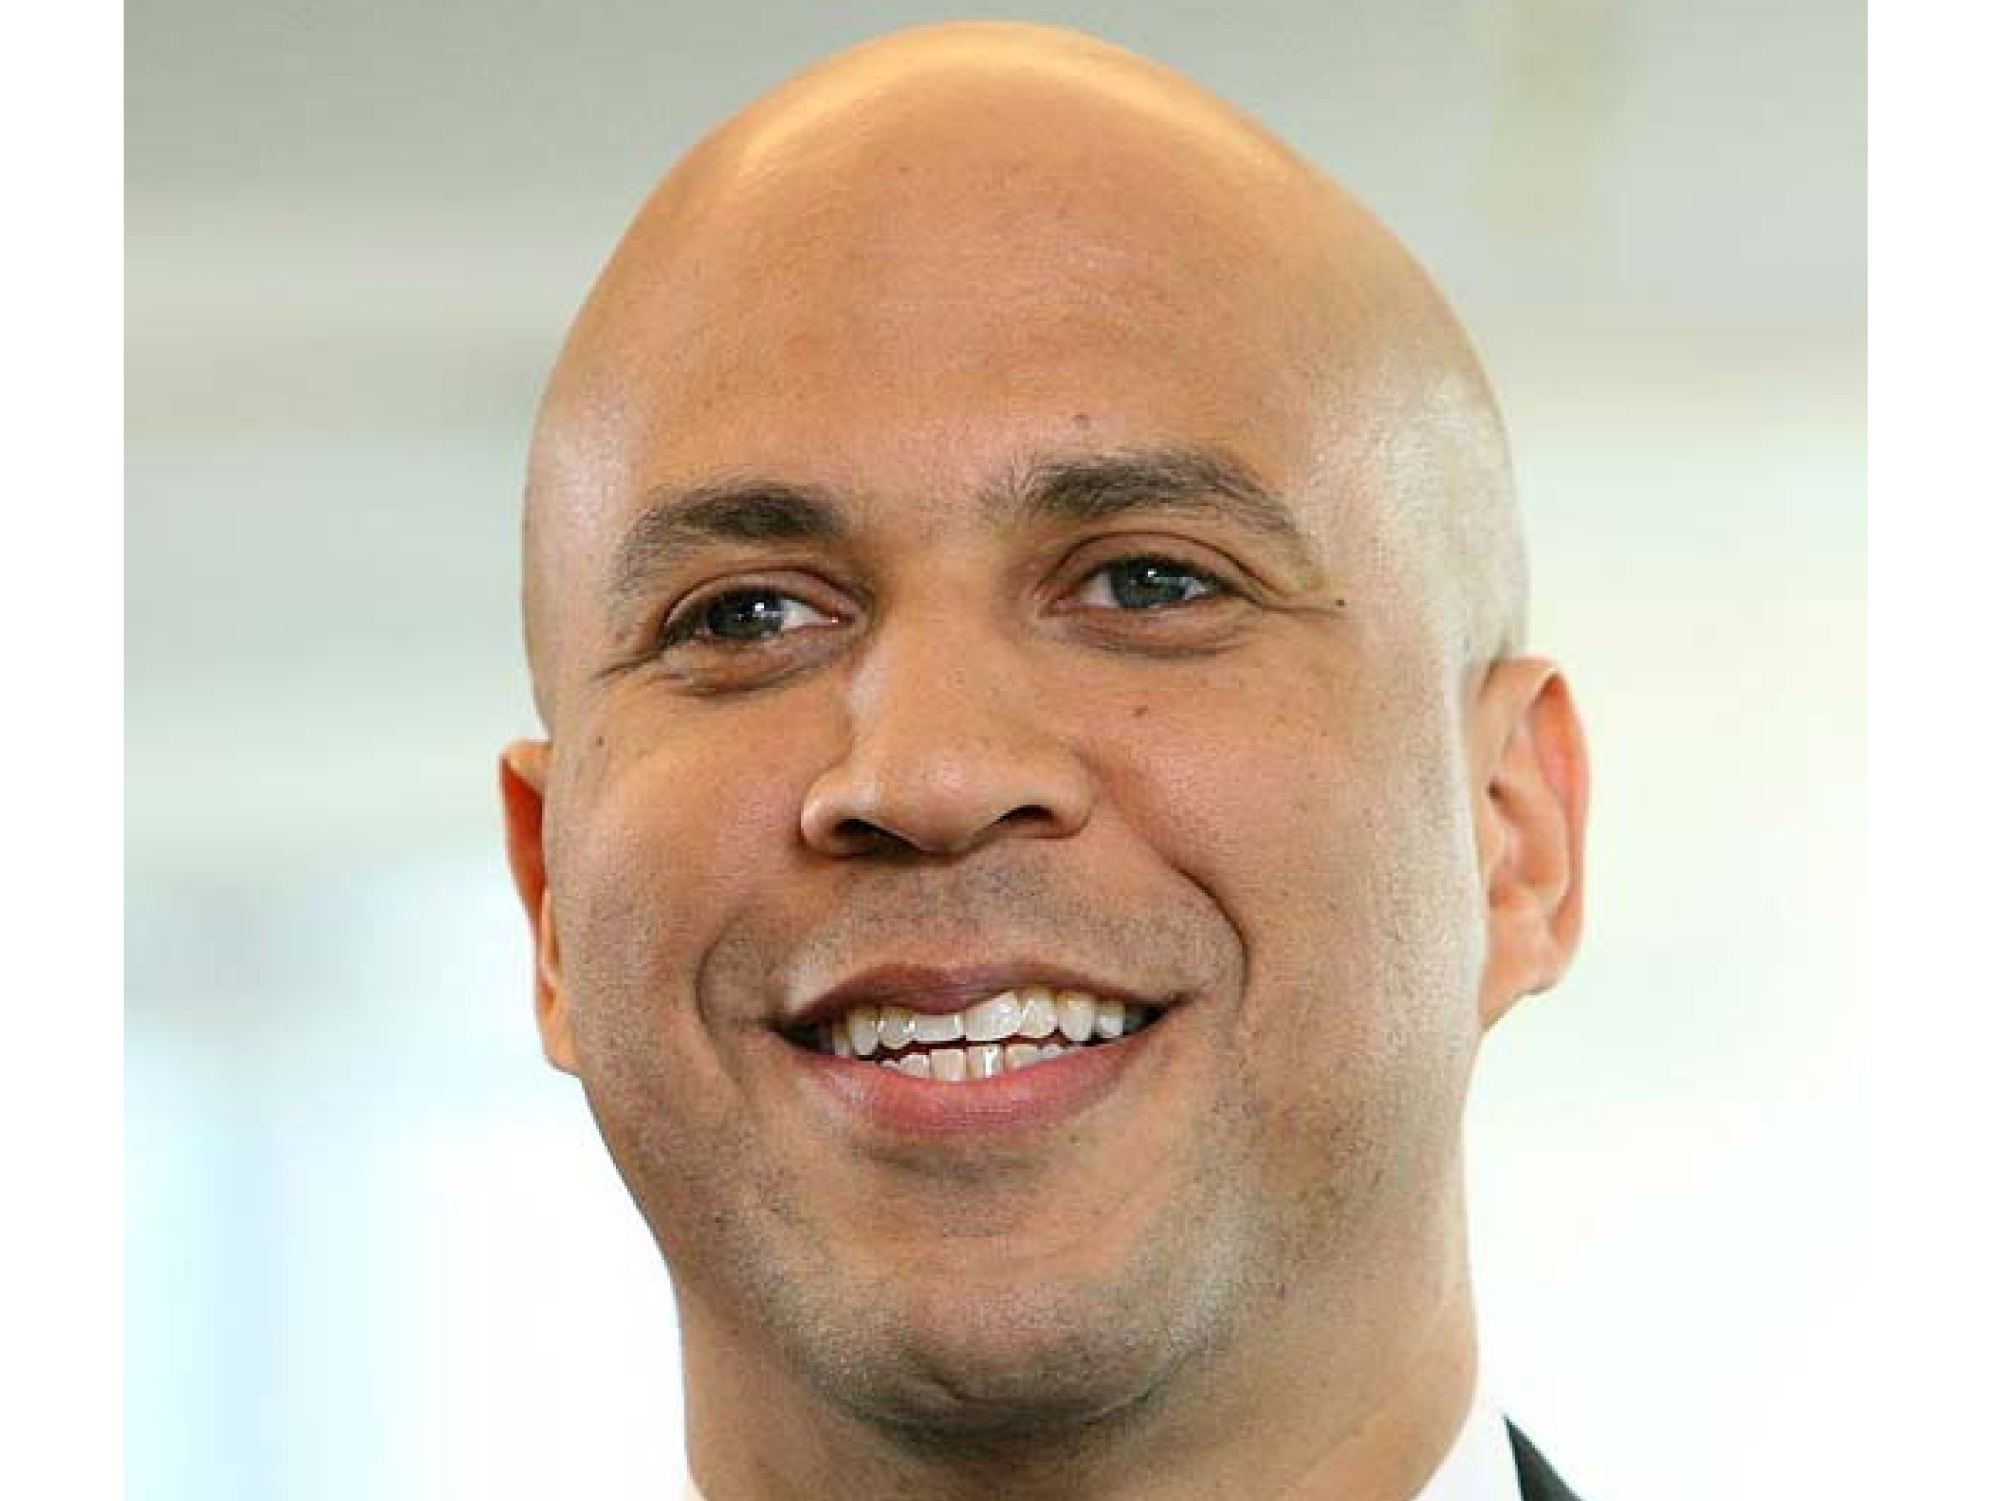 2020 Presidential Candidate Cory Booker